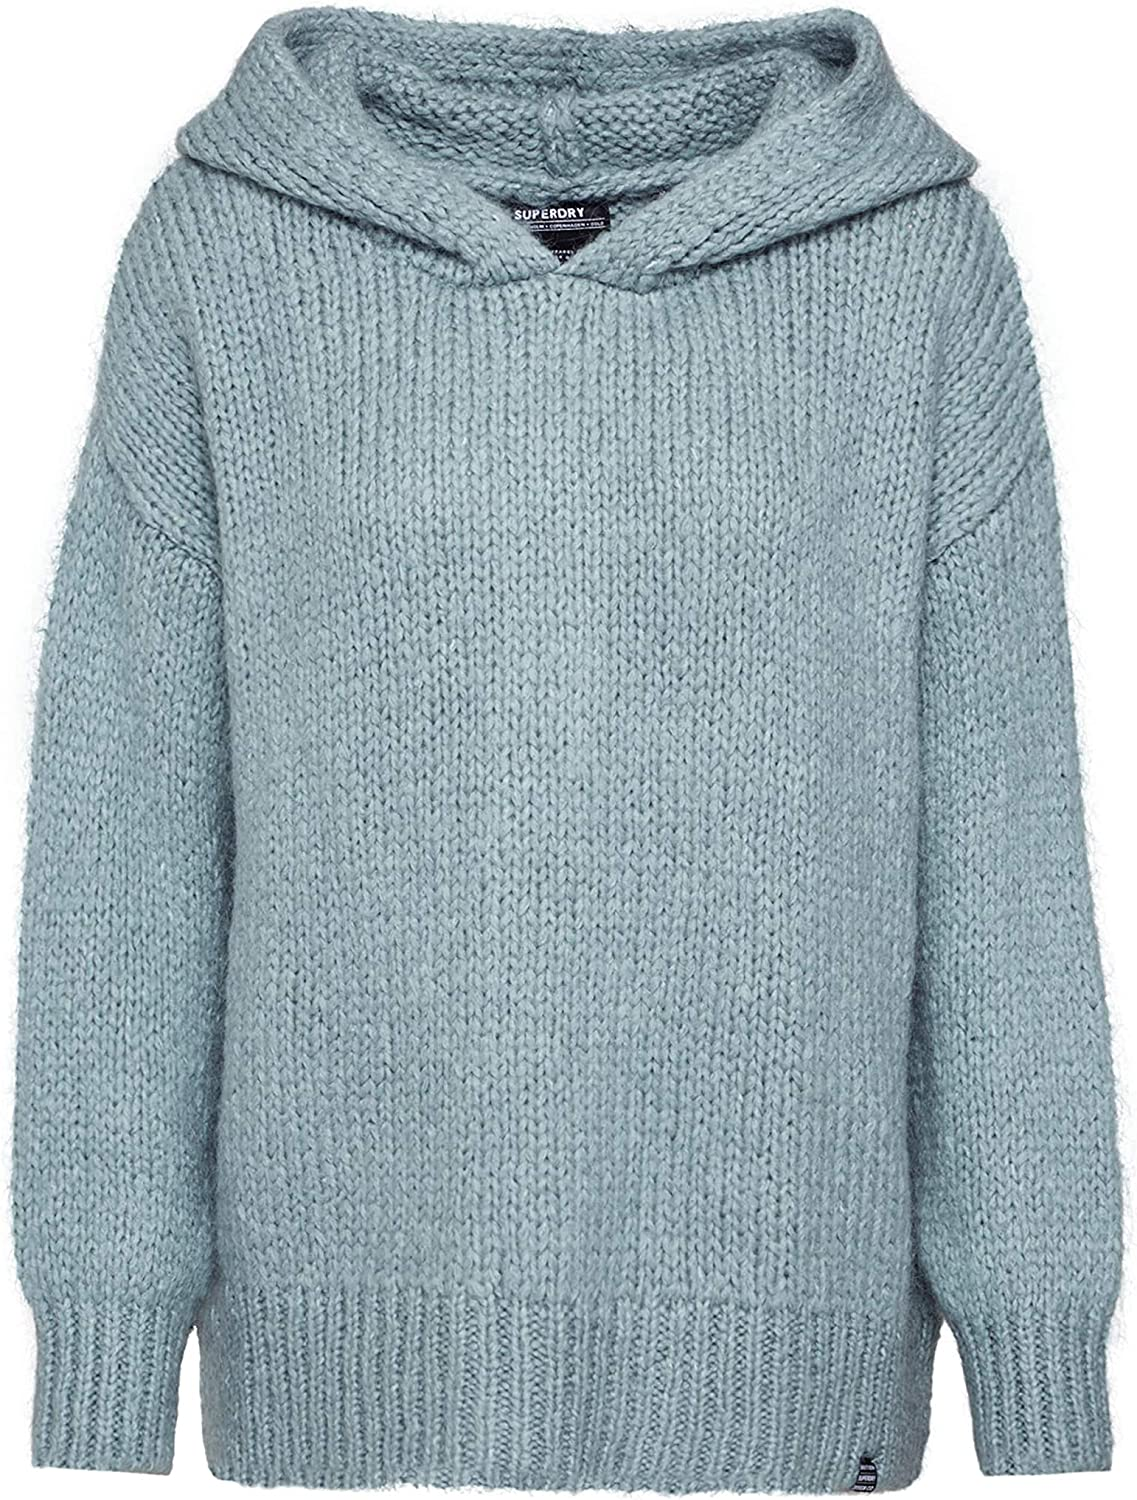 Superdry Gia Tape Hoodie at Amazon Women's Clothing store